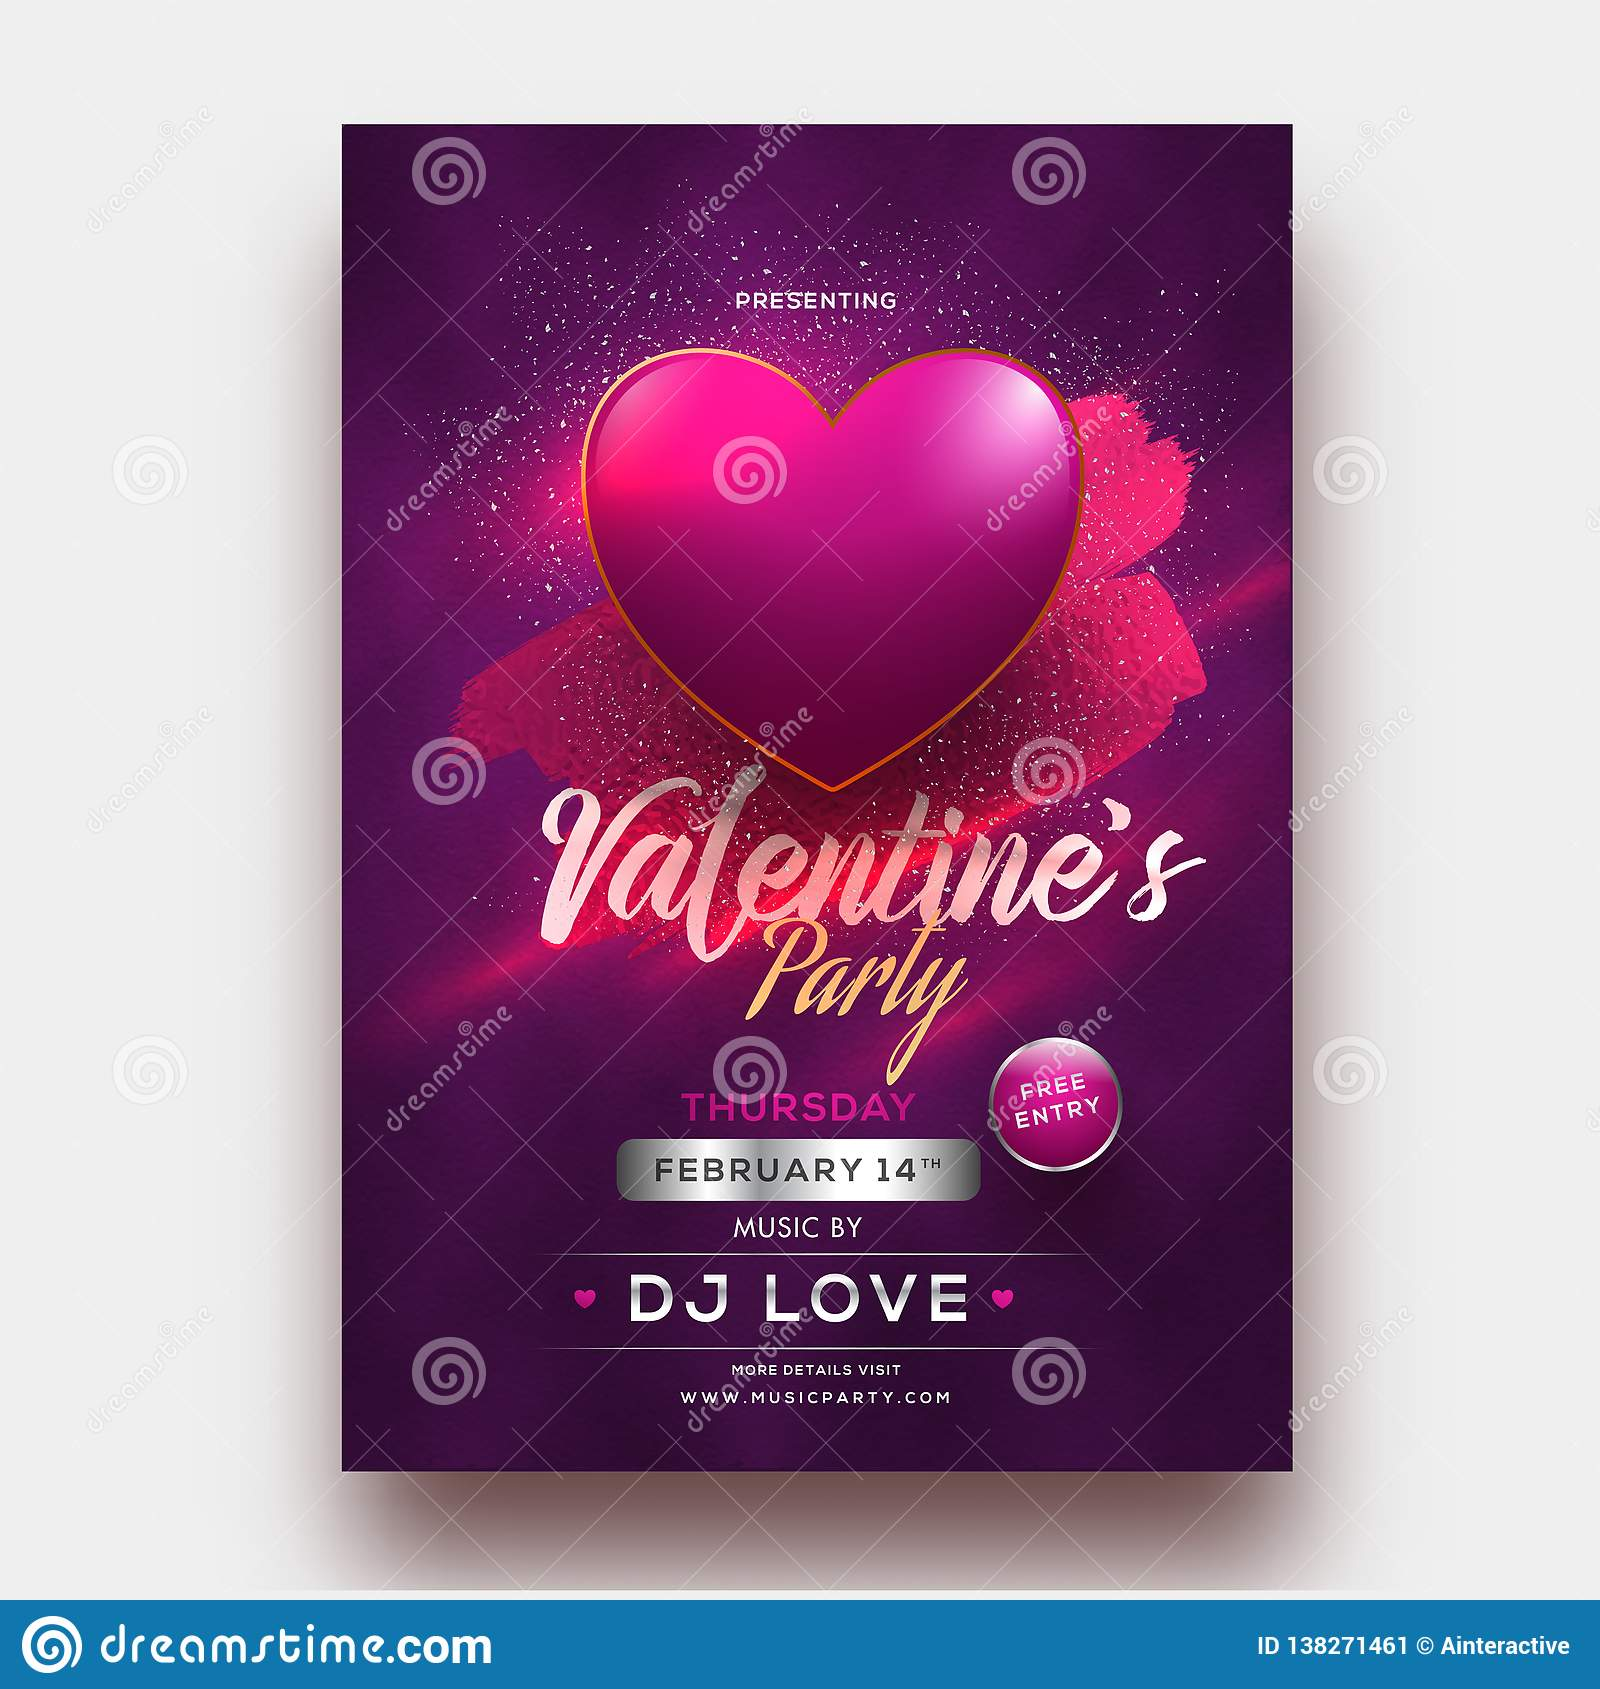 Shiny Heart Shape On Purple Background For Valentine S Party